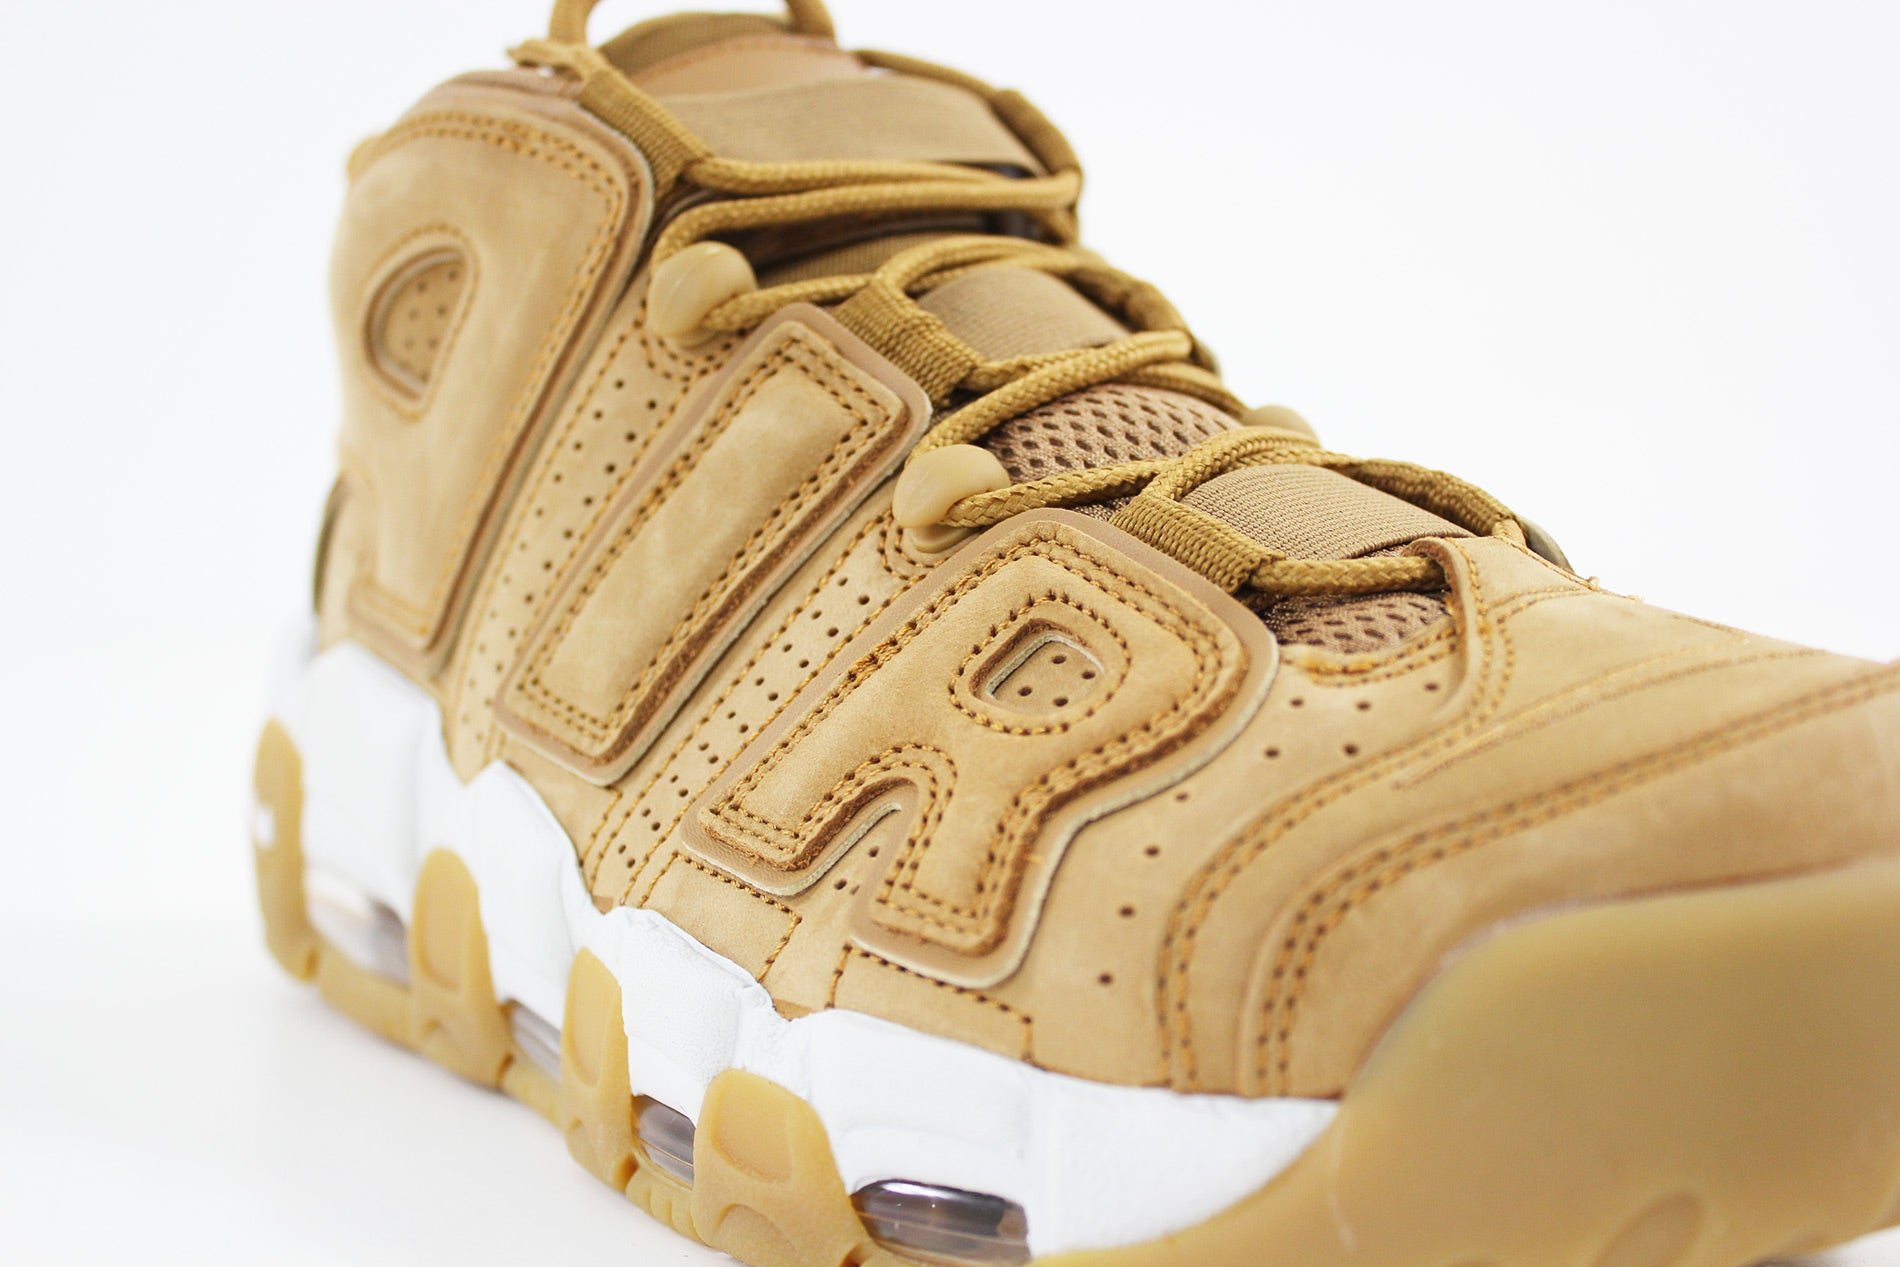 Nike - Air More Uptempo '96 Premium (FLAX/FLAX-PHANTOM-GUM LIGHT BROWN) AA4060-200